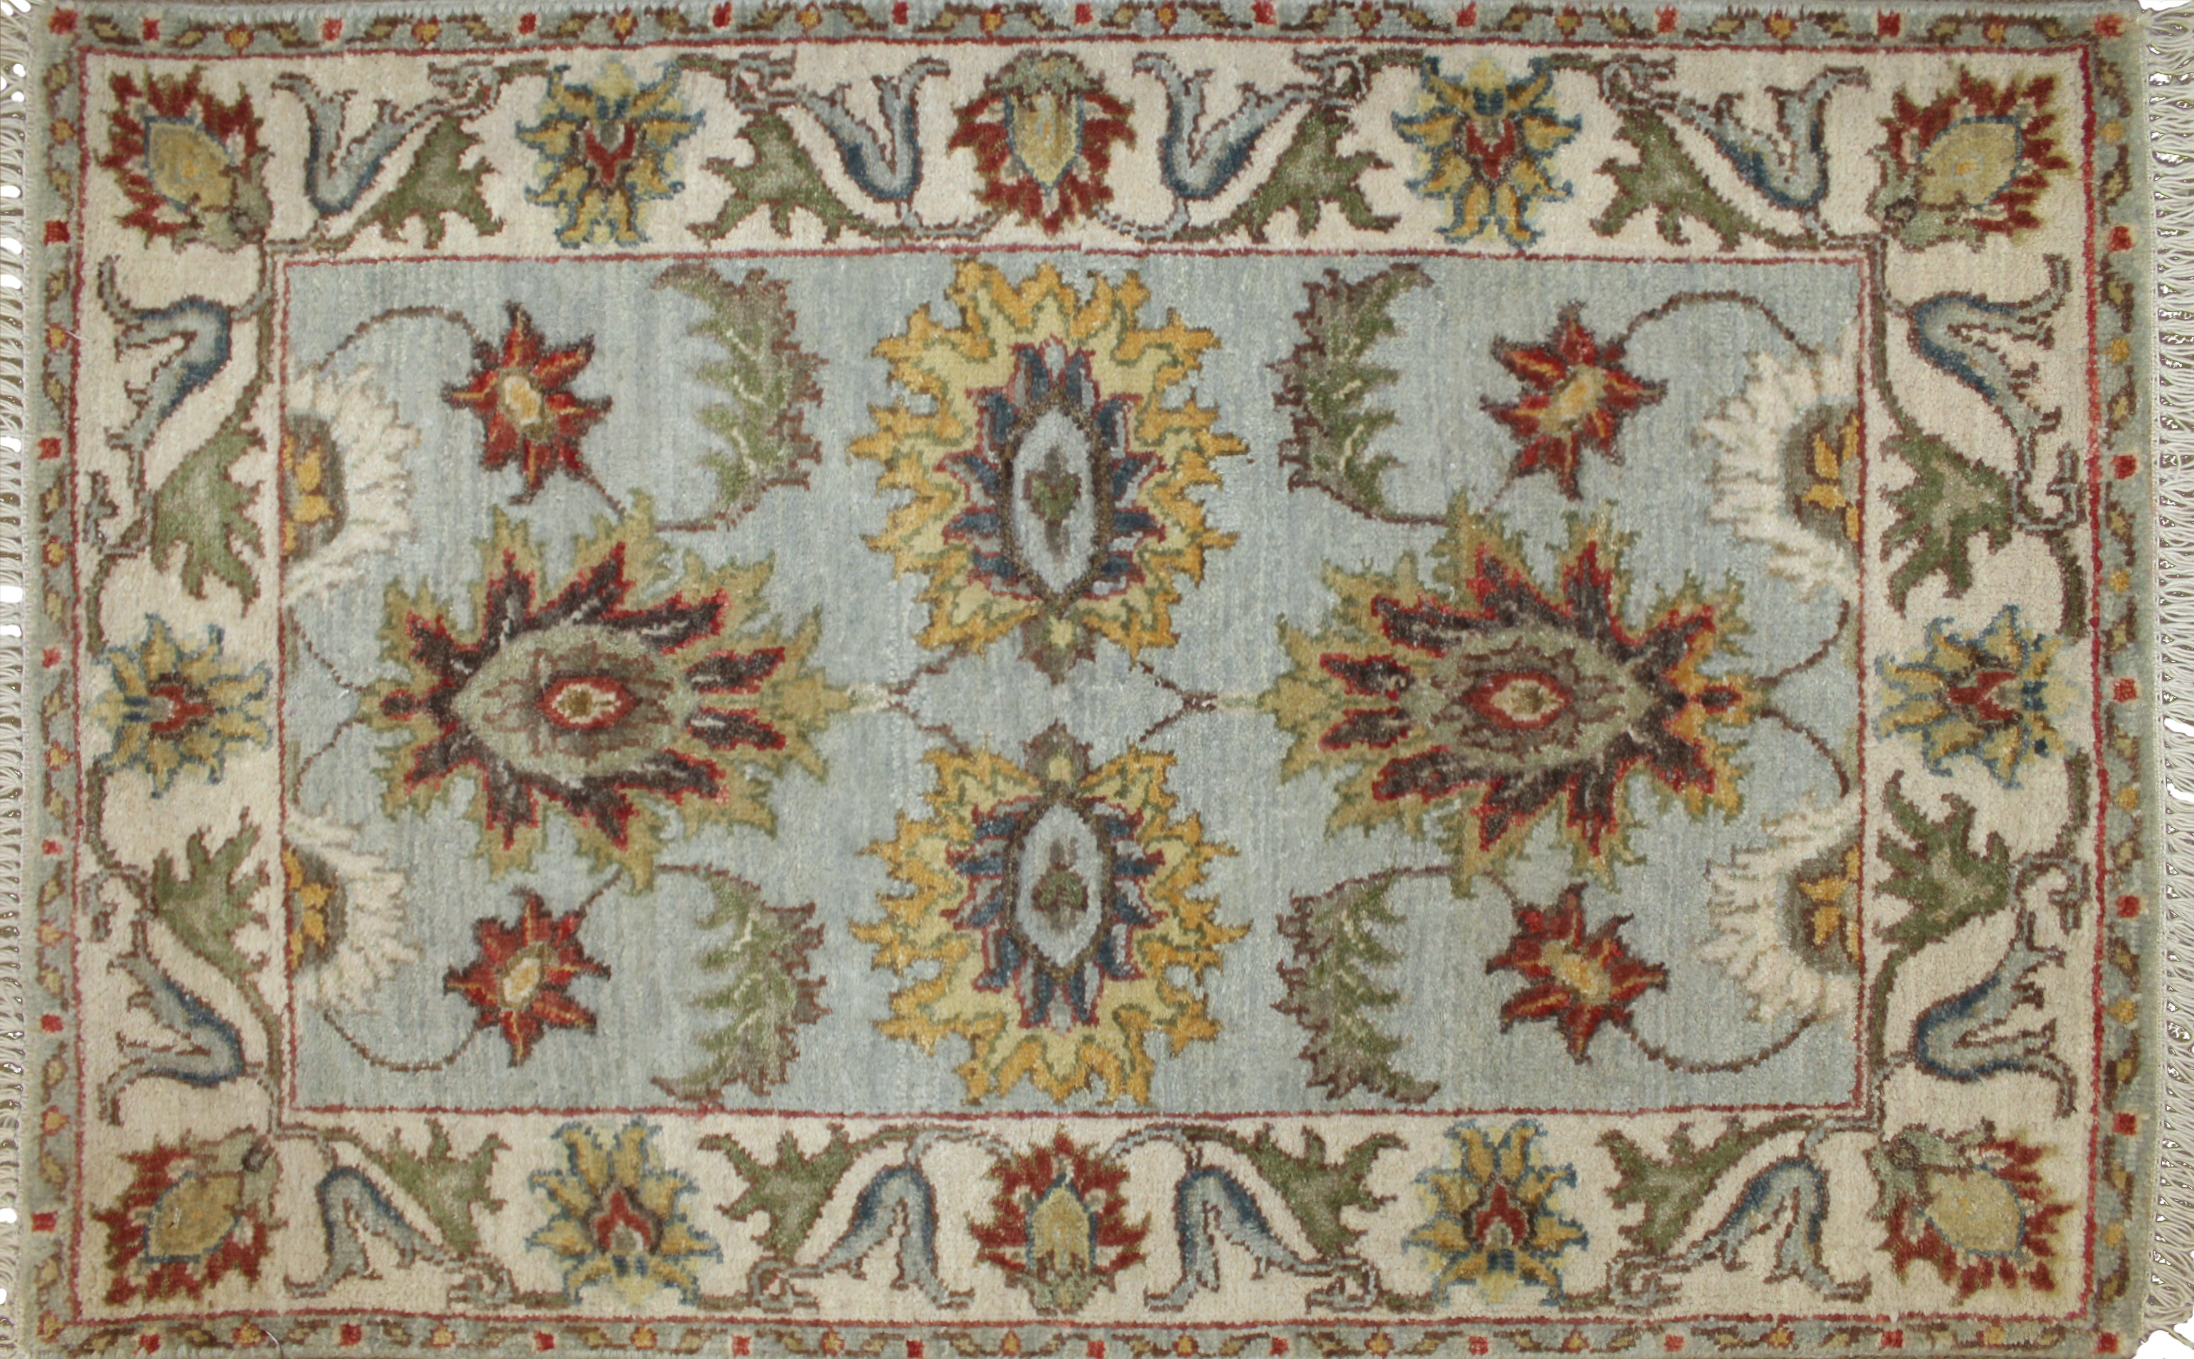 2X3 Traditional Hand Knotted Wool Area Rug - MR023829